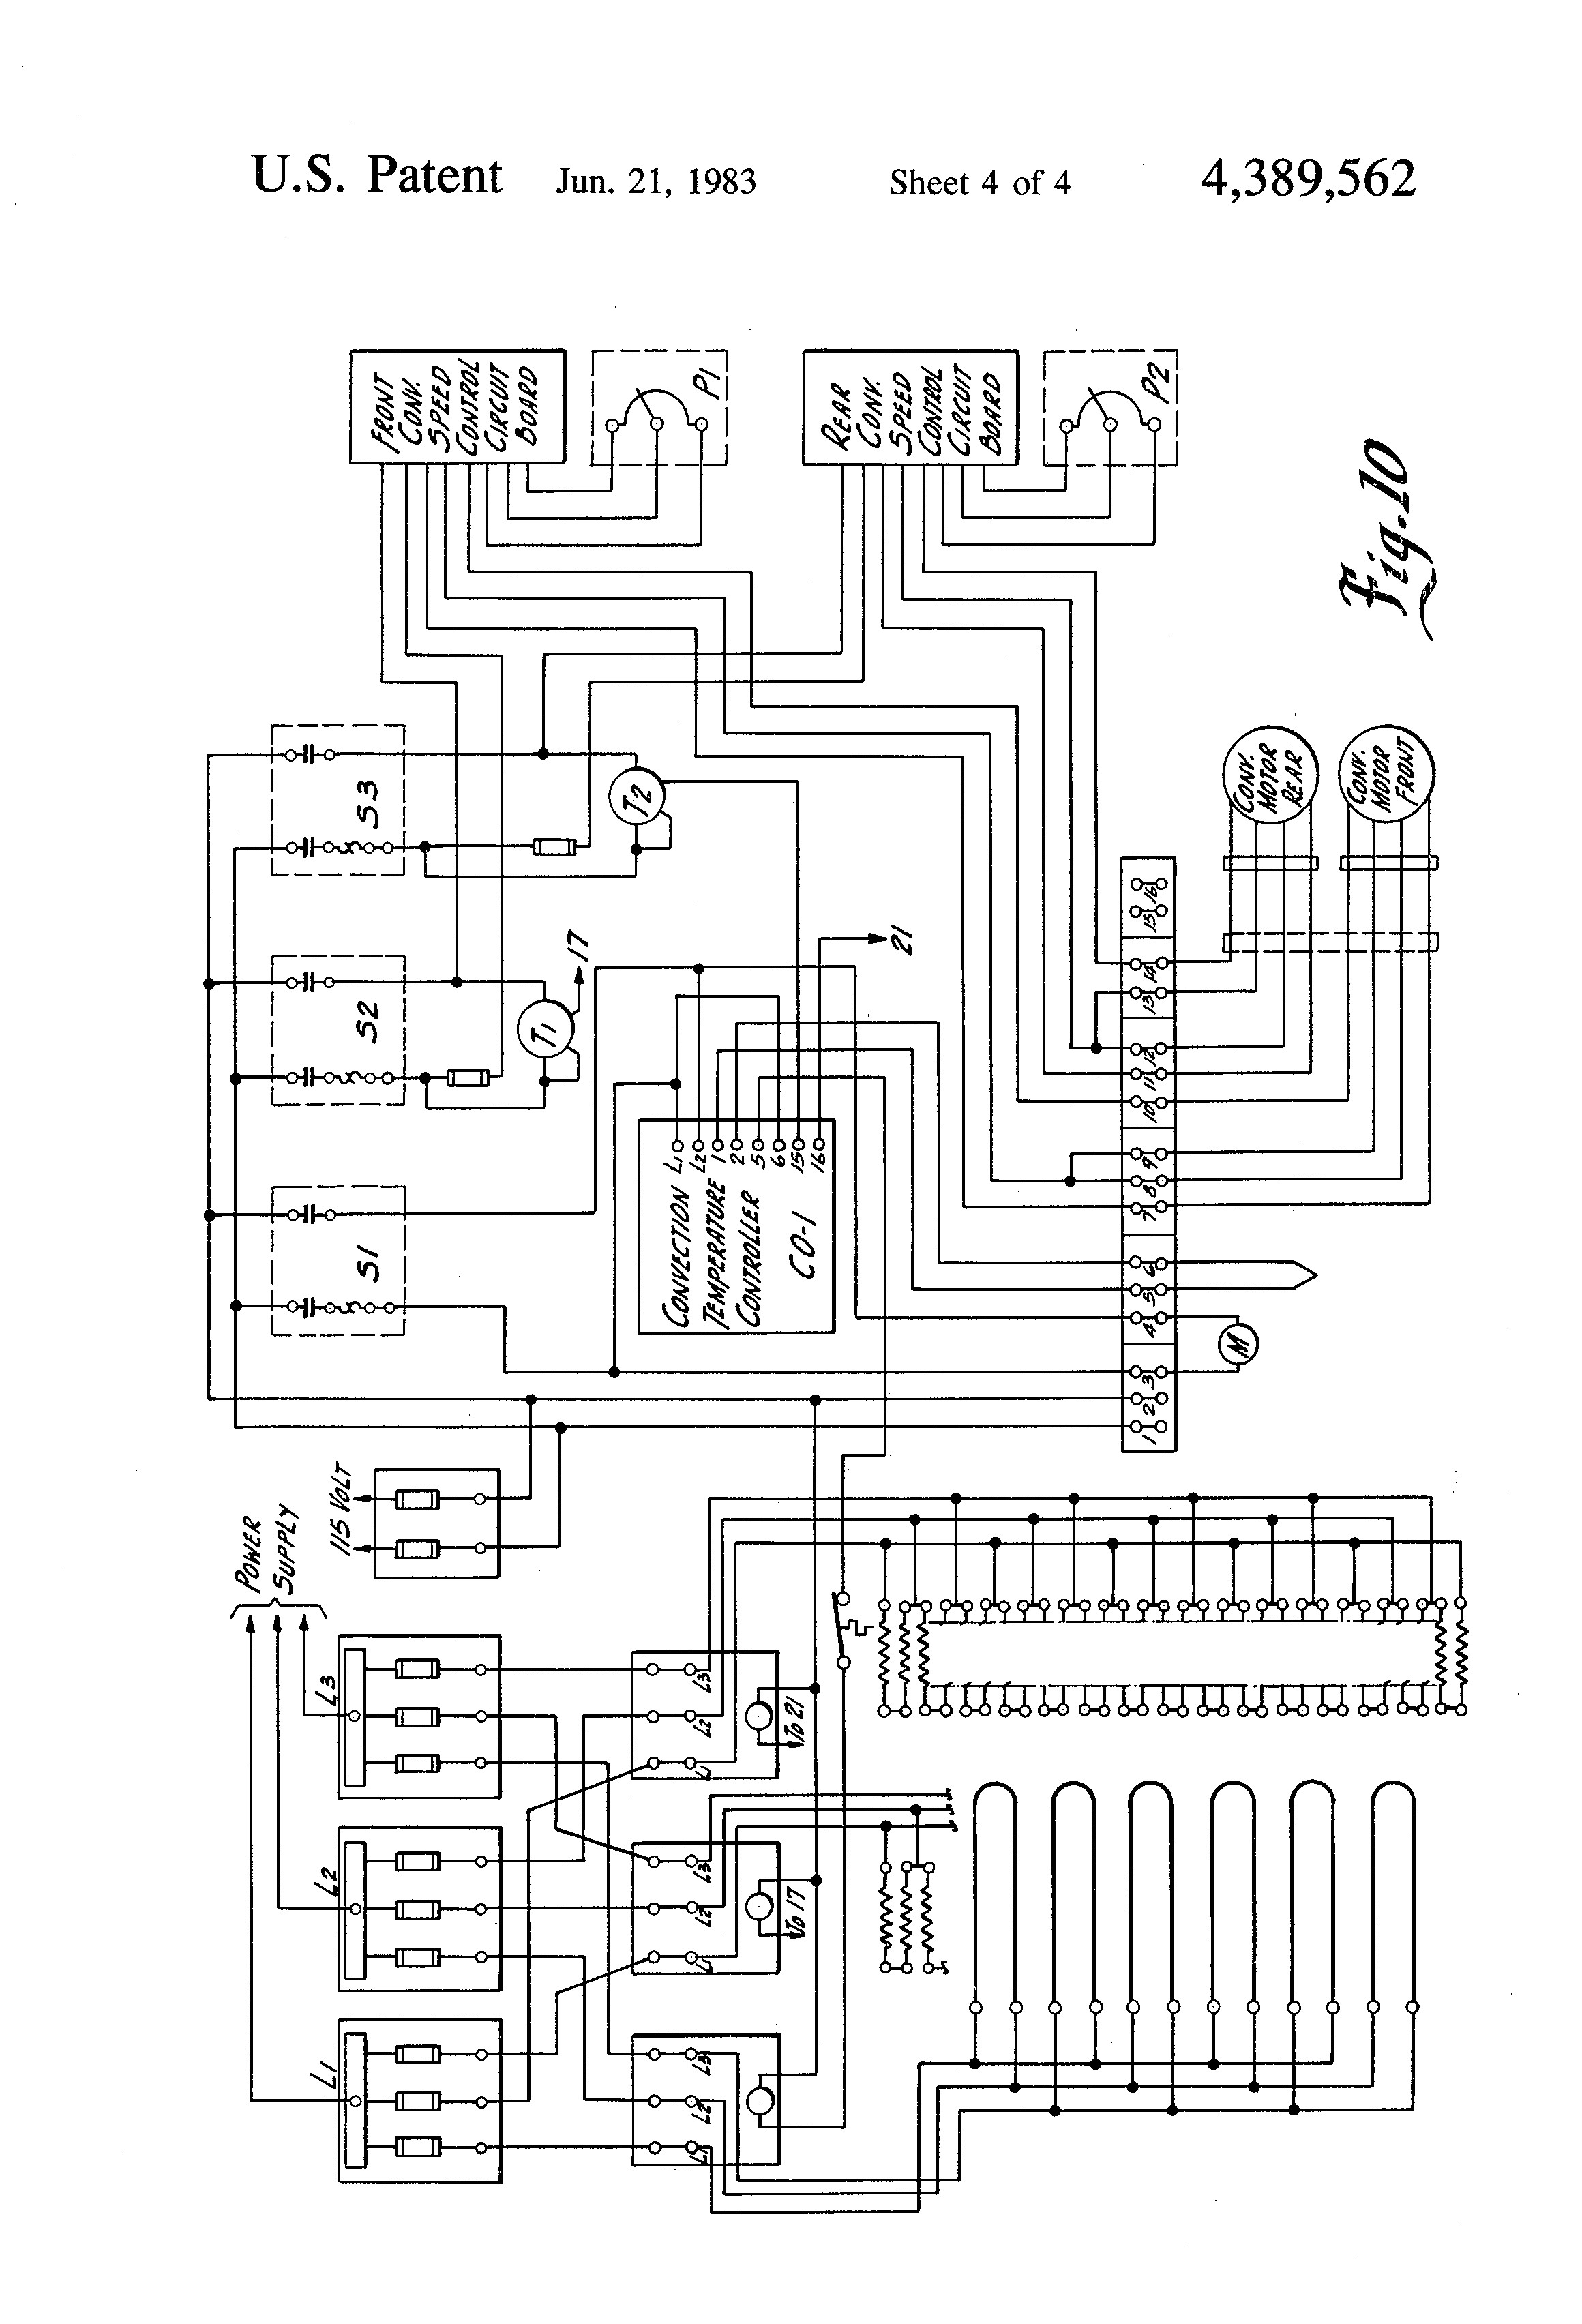 hatco booster heater wiring diagram Collection-hatco booster heater wiring diagram introduction to electrical rh jillkamil Hatco Booster Heater C 15 8-a